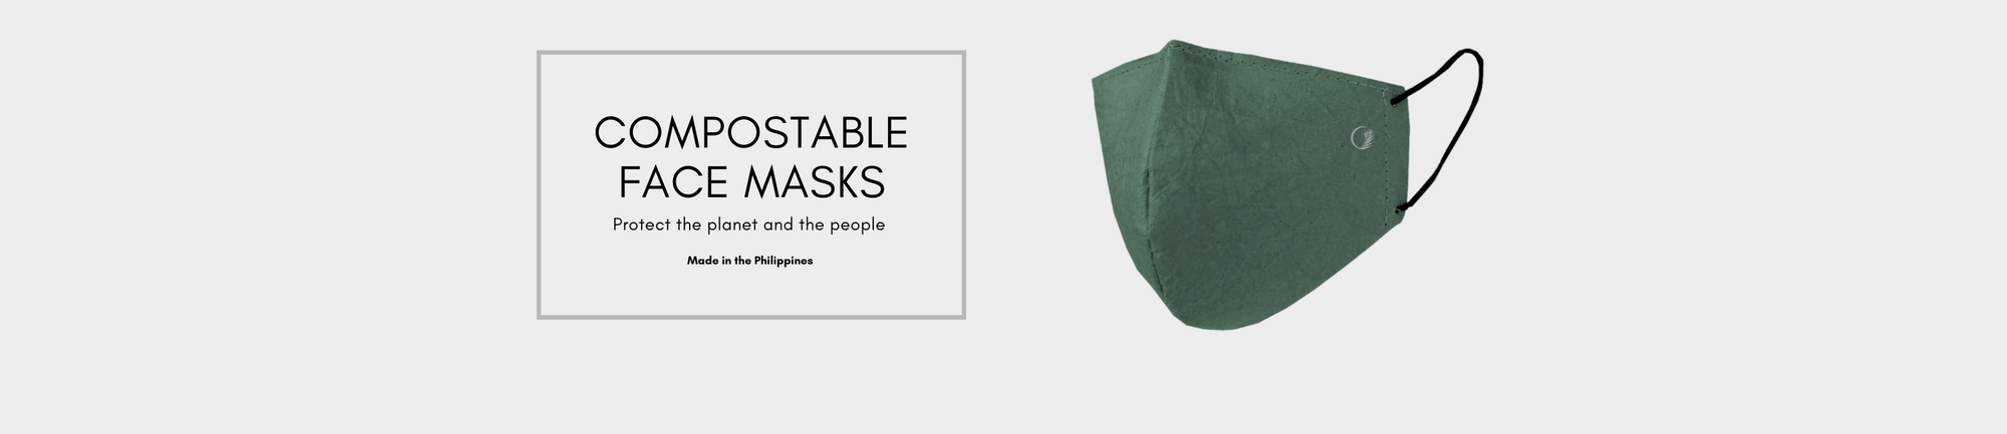 Compostable Face Mask